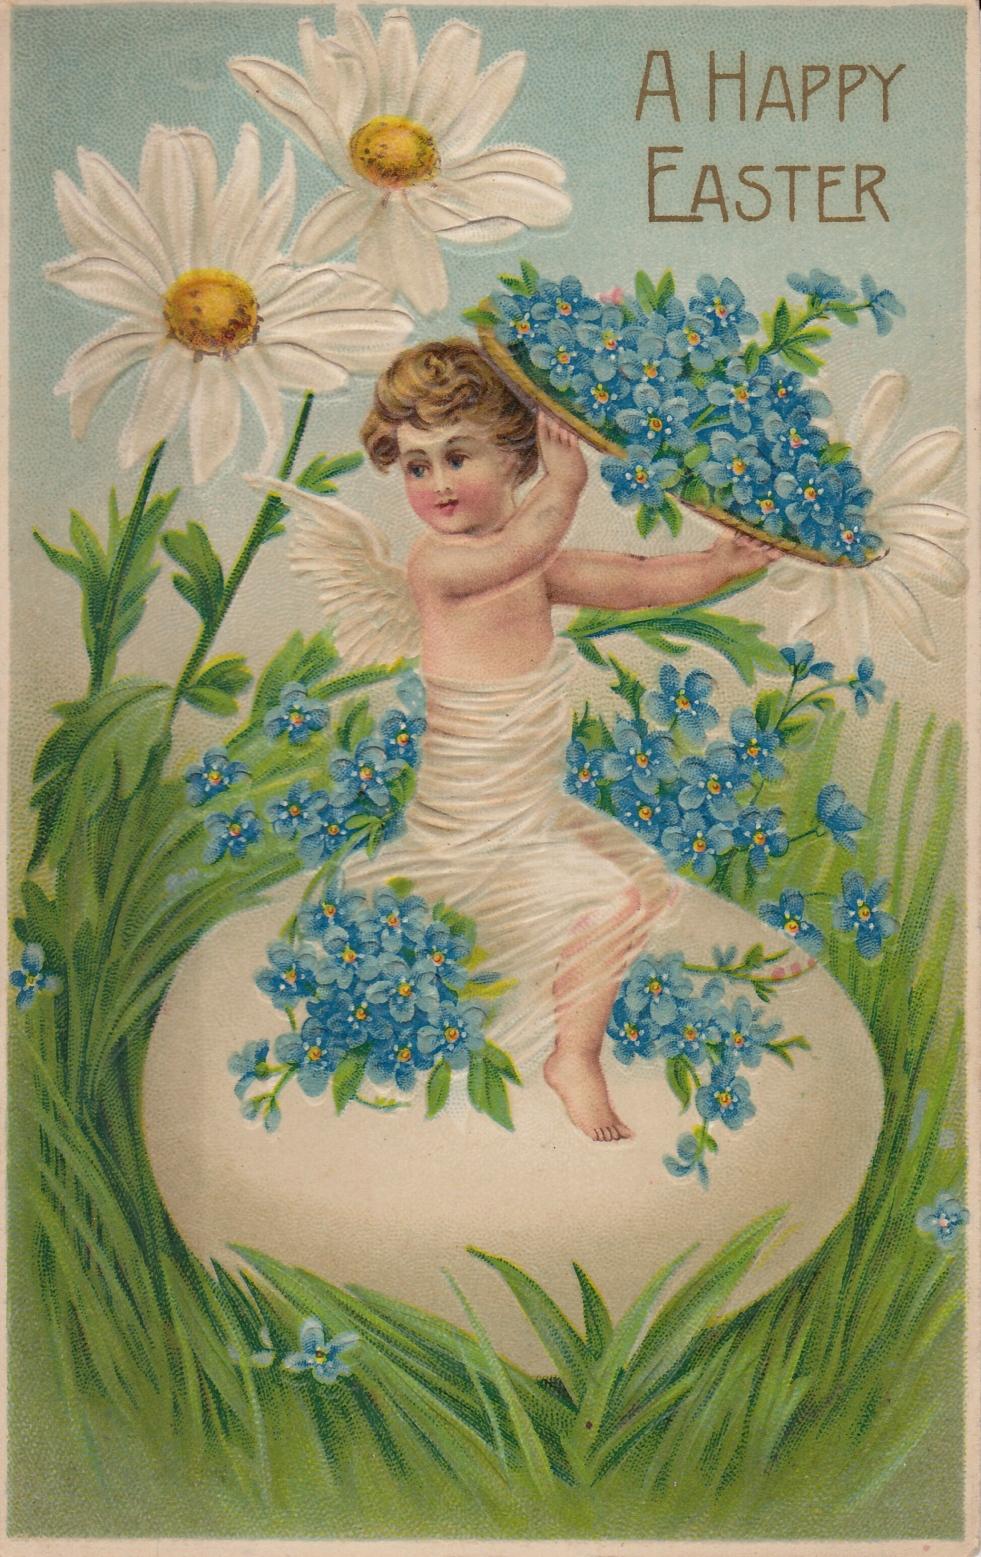 Wings of Whimsy: A Happy Cherub Easter - free for personal use #vintage #ephemera #printable #easter #freebie